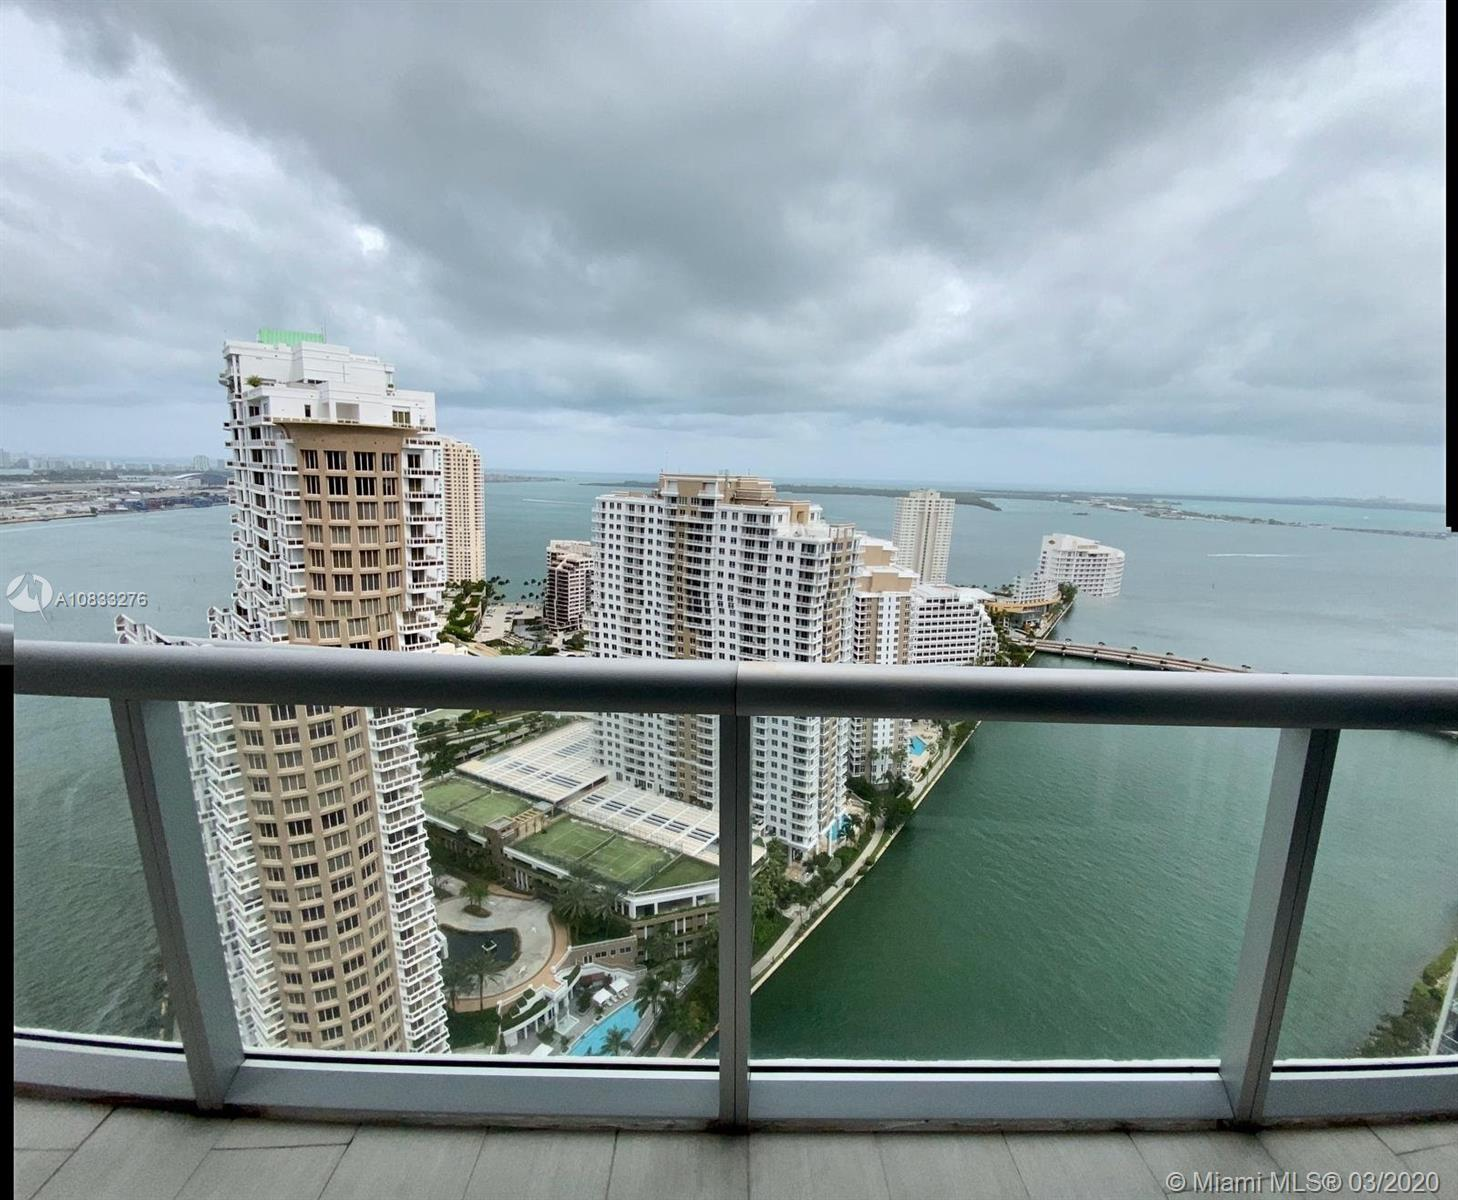 465 Brickell Ave # 3401, Miami, Florida 33131, 3 Bedrooms Bedrooms, ,3 BathroomsBathrooms,Residential,For Sale,465 Brickell Ave # 3401,A10833276